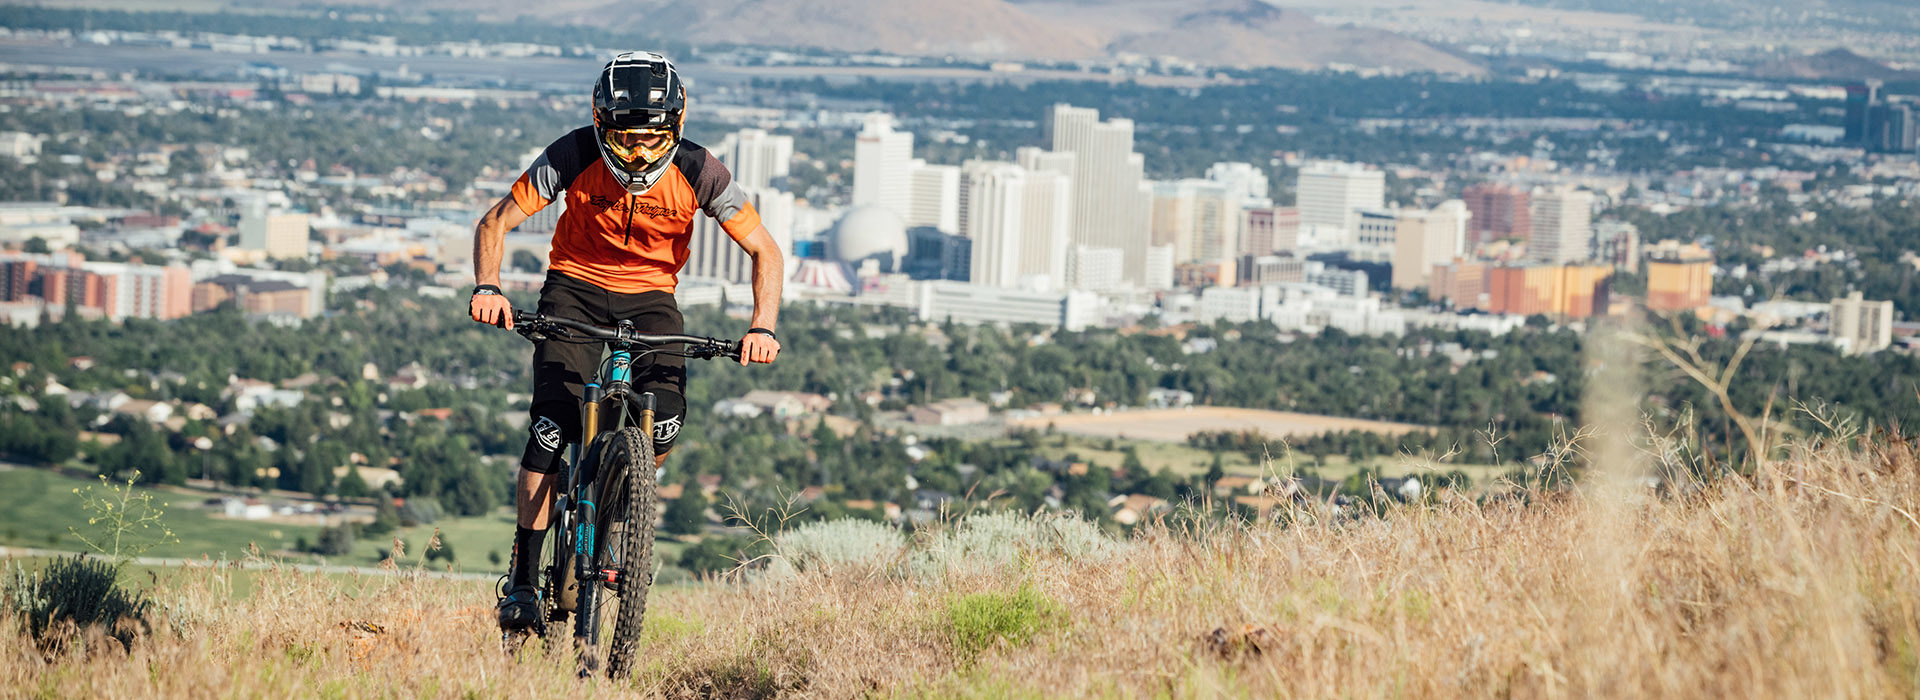 Reno Cycling, Reno Mountain Biking & Lake Tahoe Mountain Biking